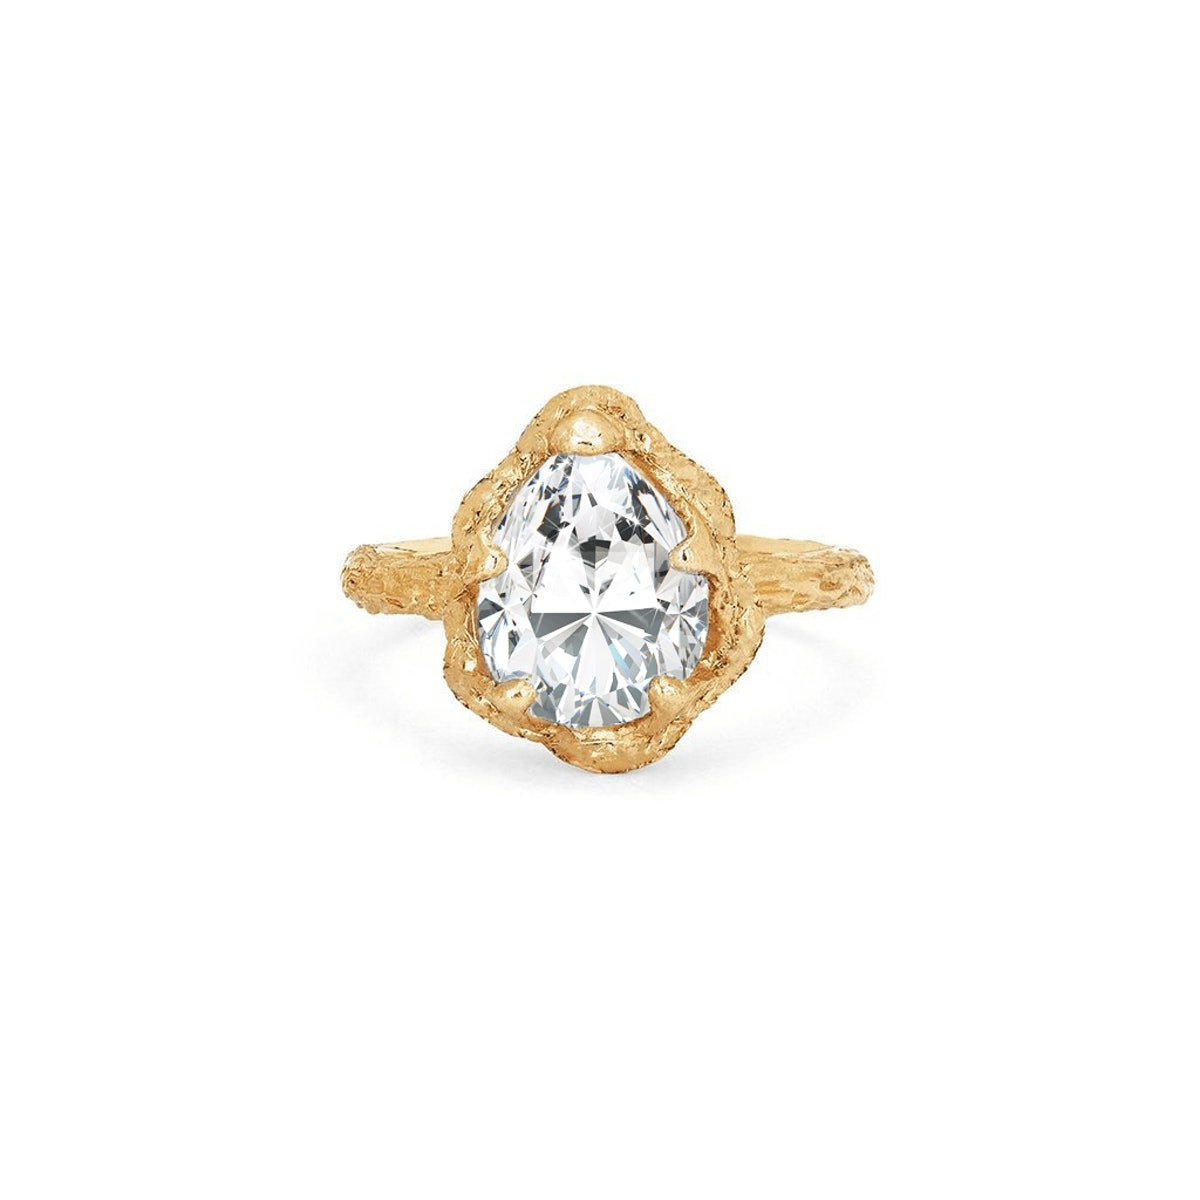 Baby Queen Water Drop Diamond Solitaire Setting from Logan Hollowell.